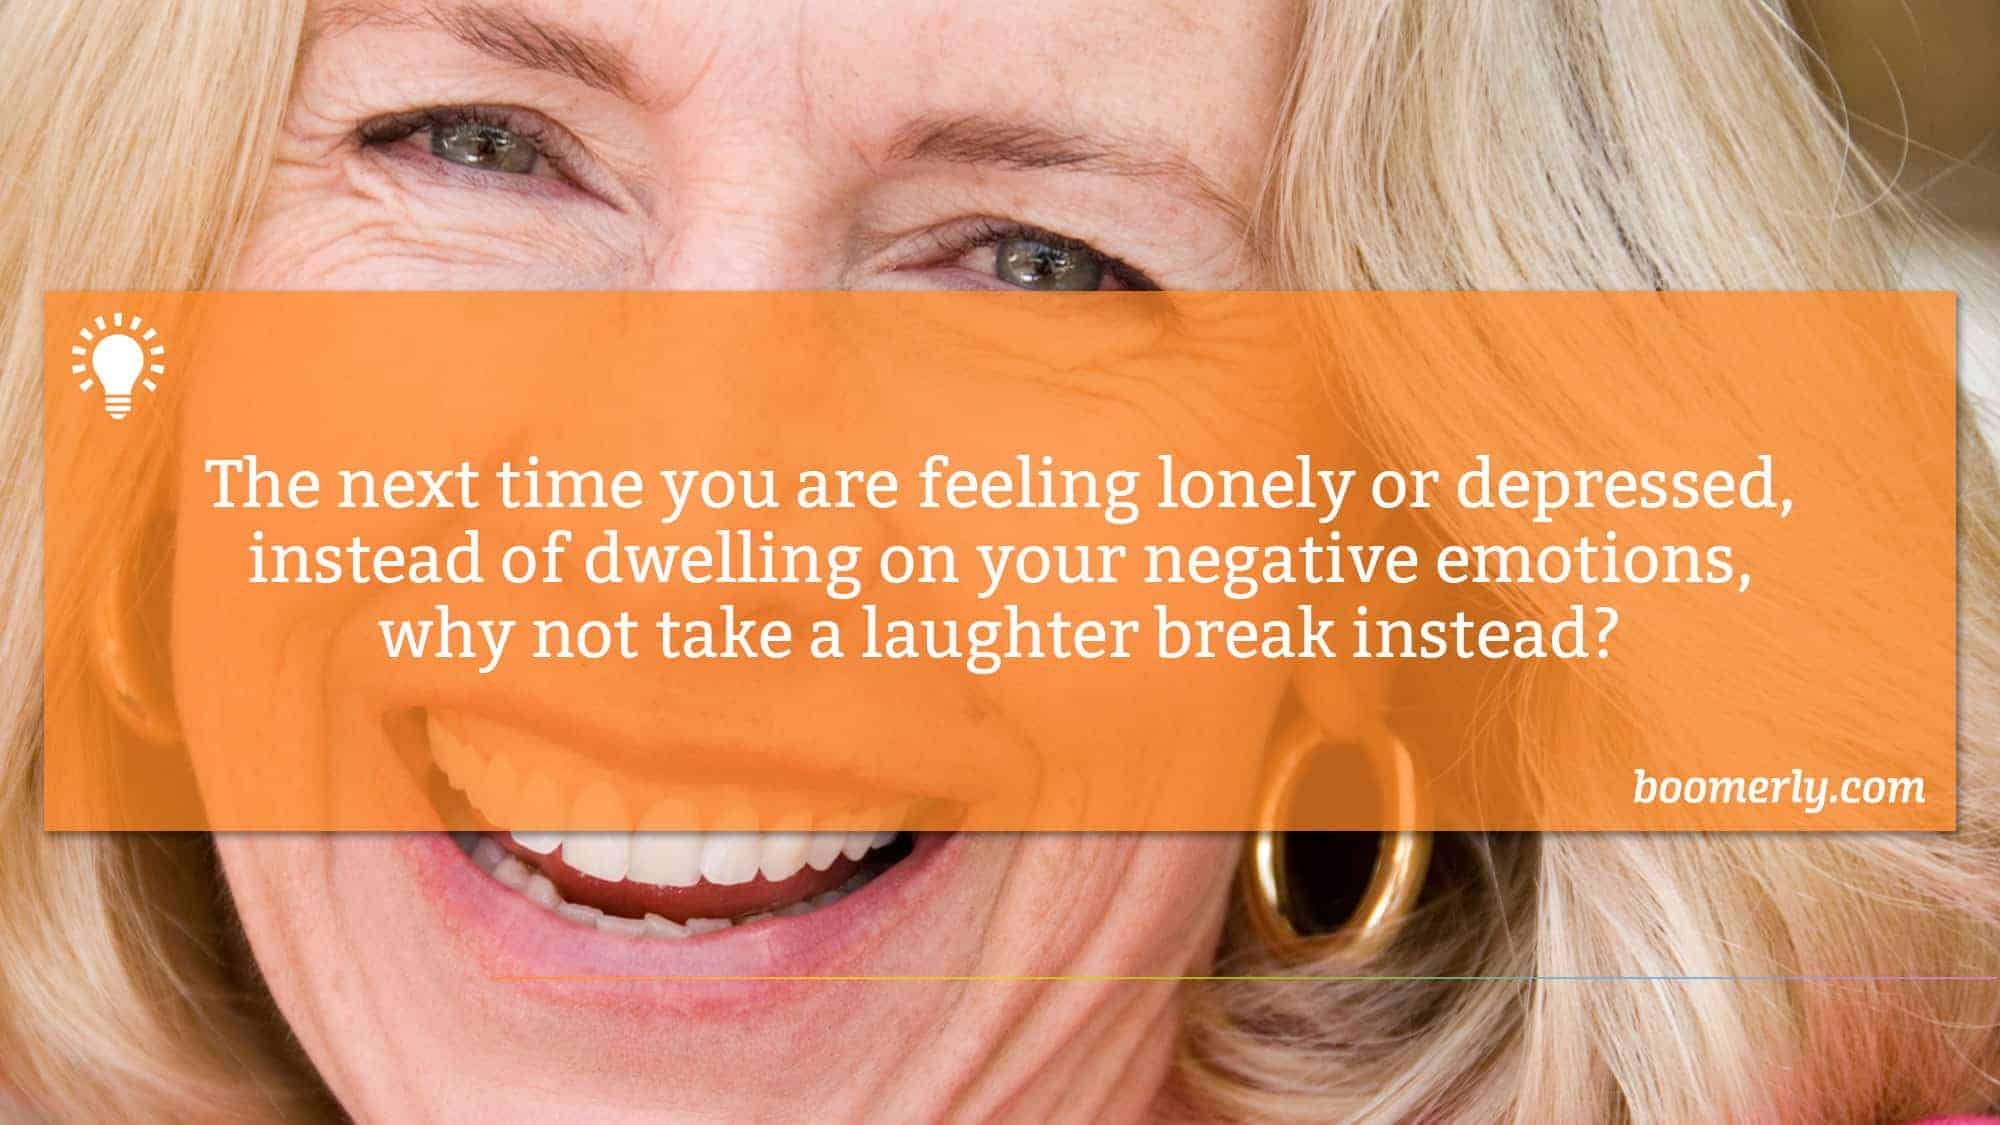 The Power of Laughter - Take a Laughter Break